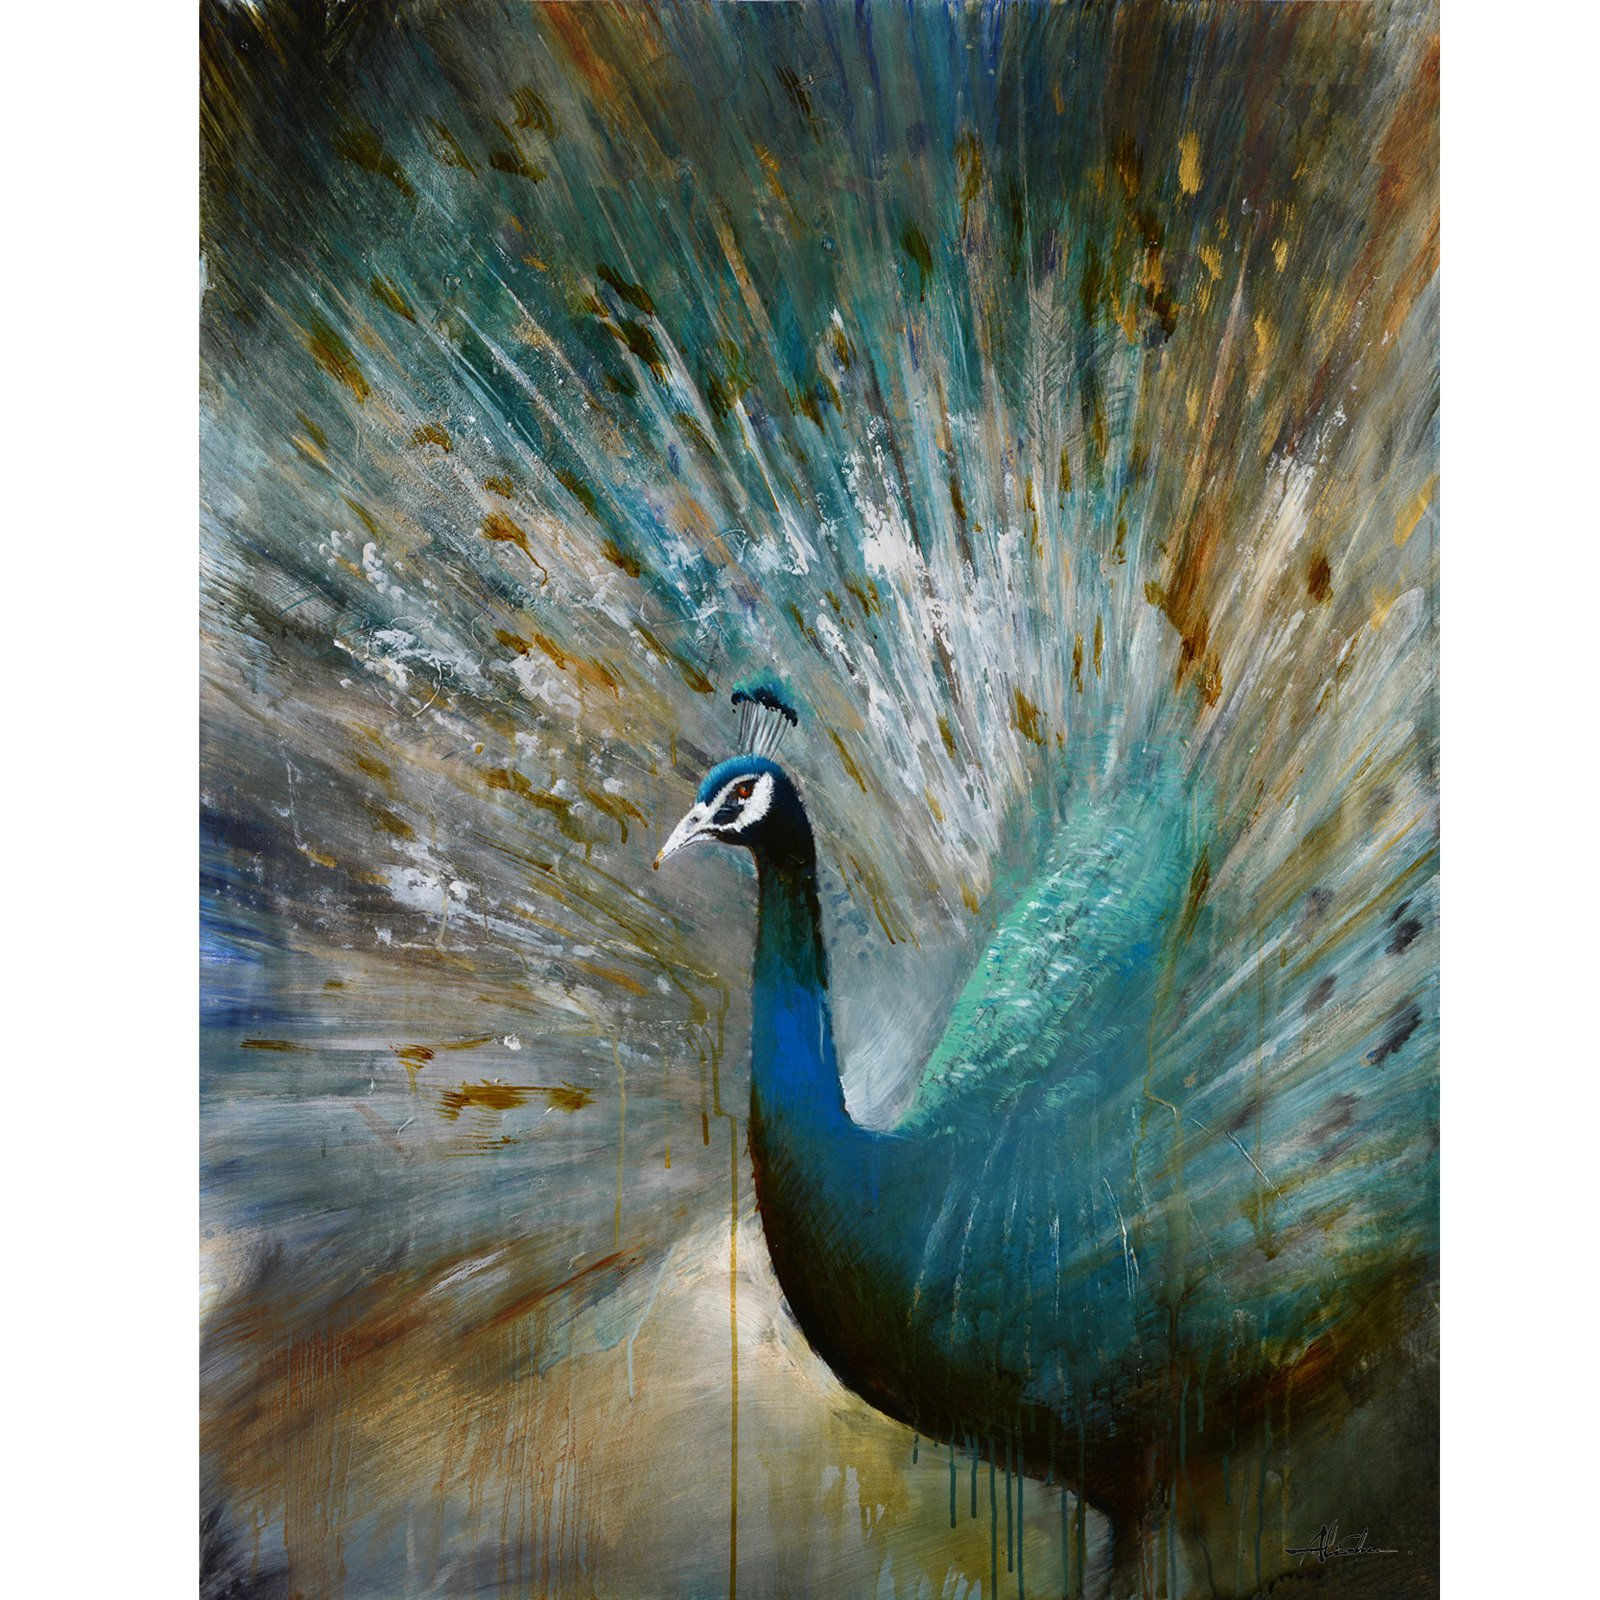 Yosemite Home Decor Peacock Prowess Wall Art - Walmart.com